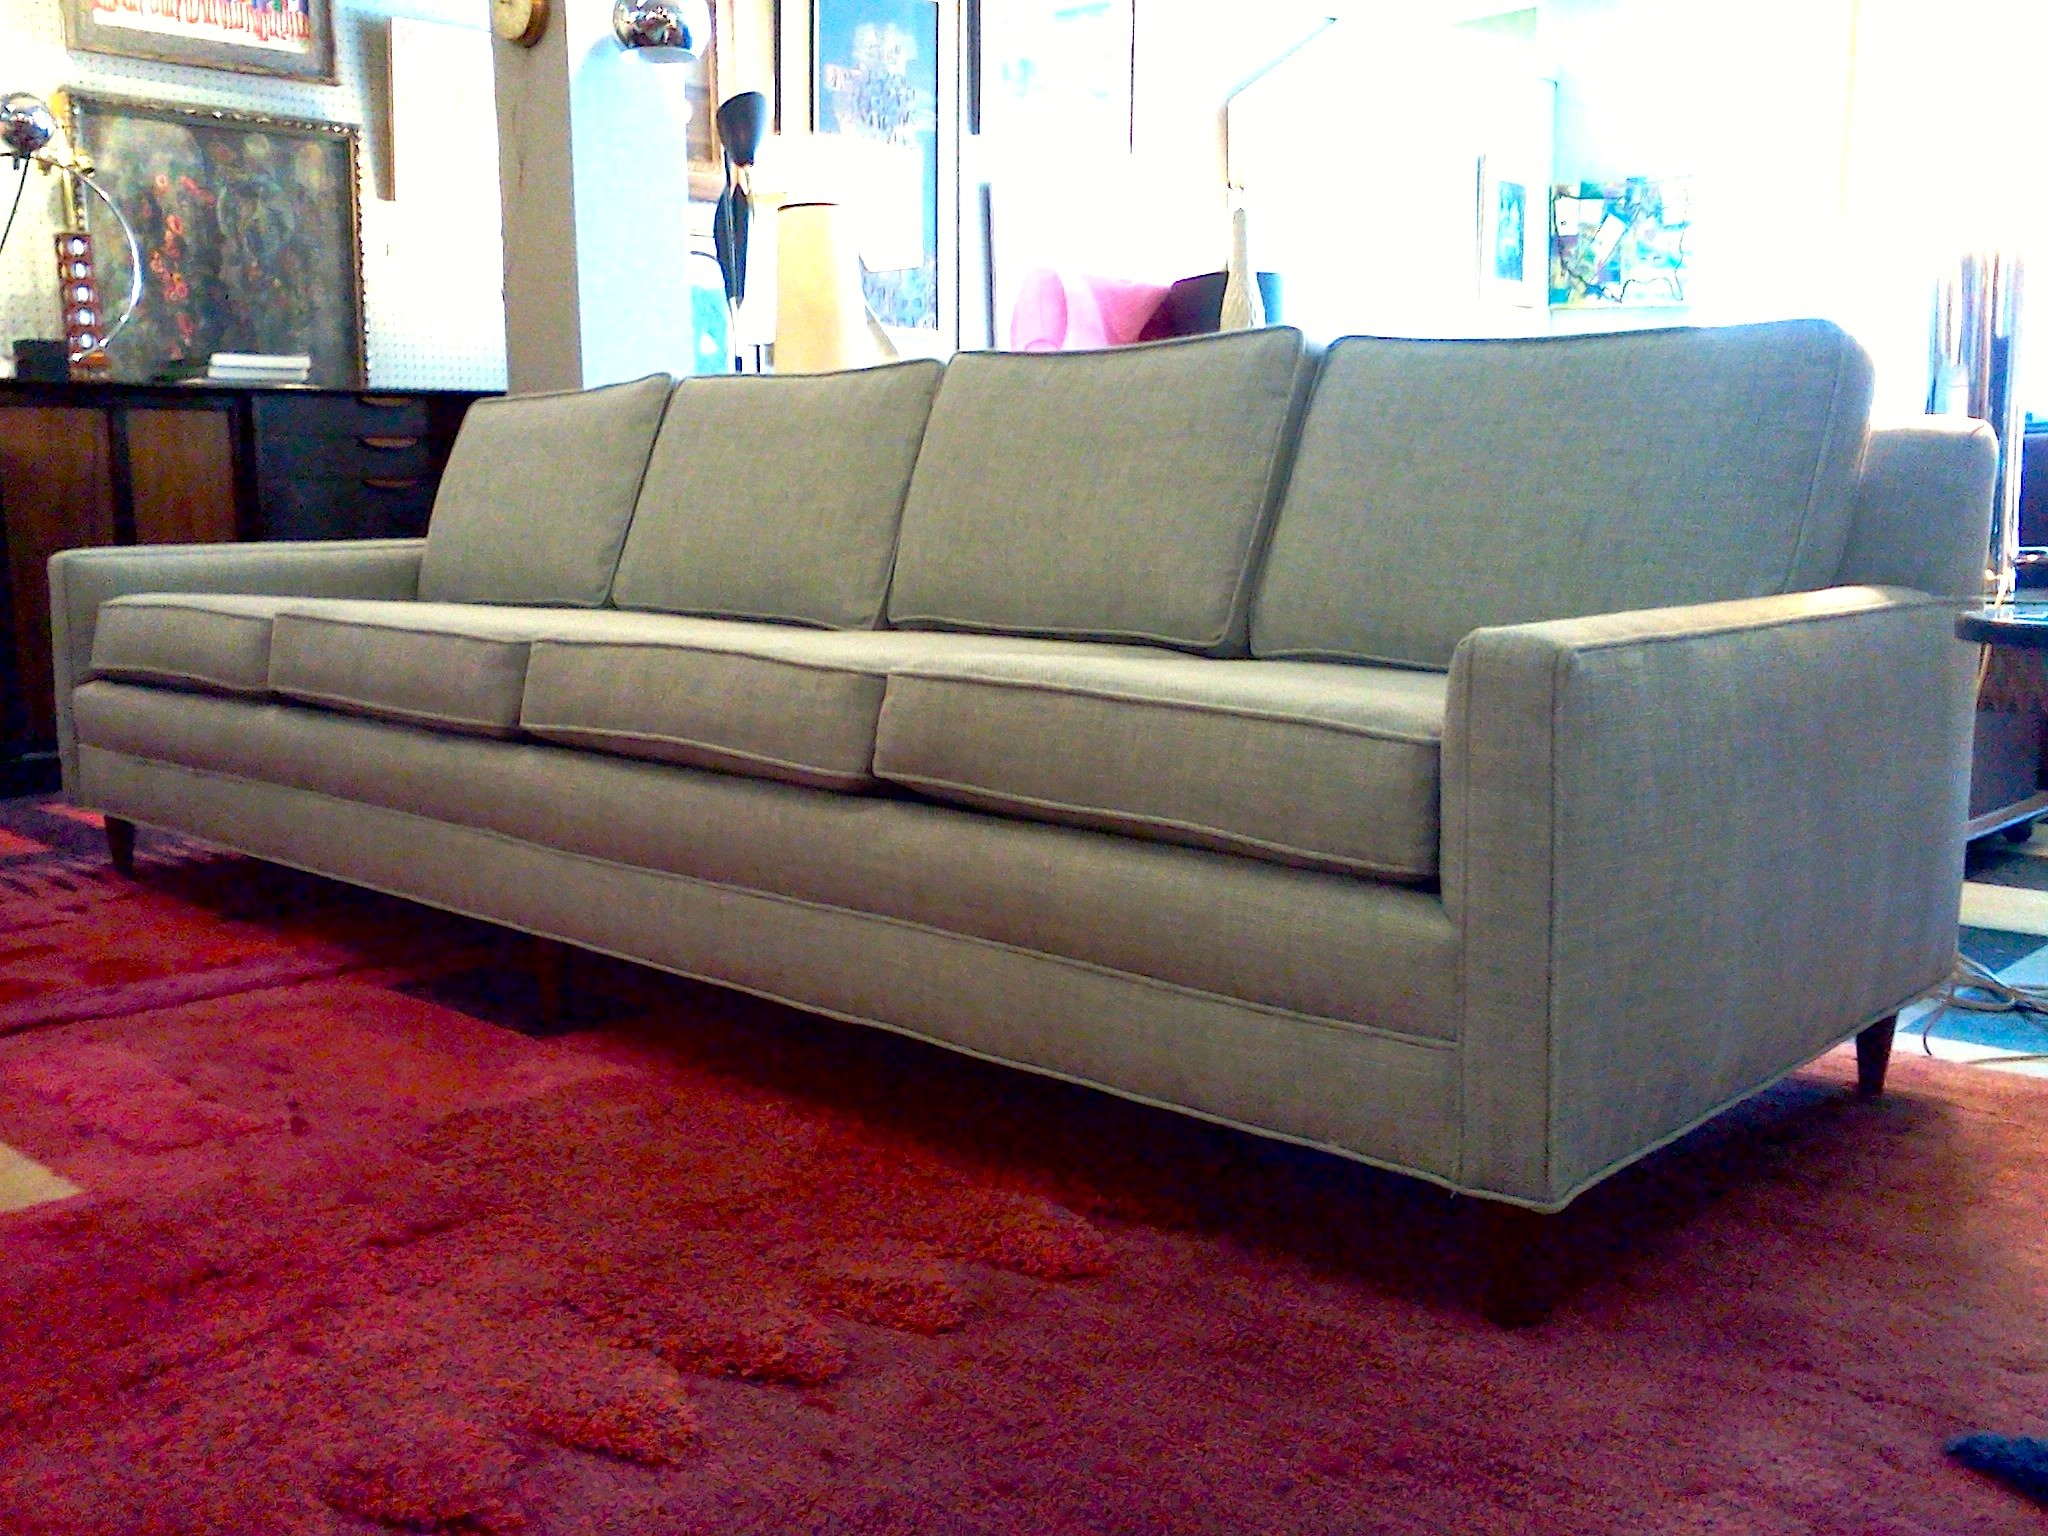 Chic Sectional Couches For Sale With Cushions And Wooden Legs For Home Furniture Ideas With Cheap Sectional Couches For Sale